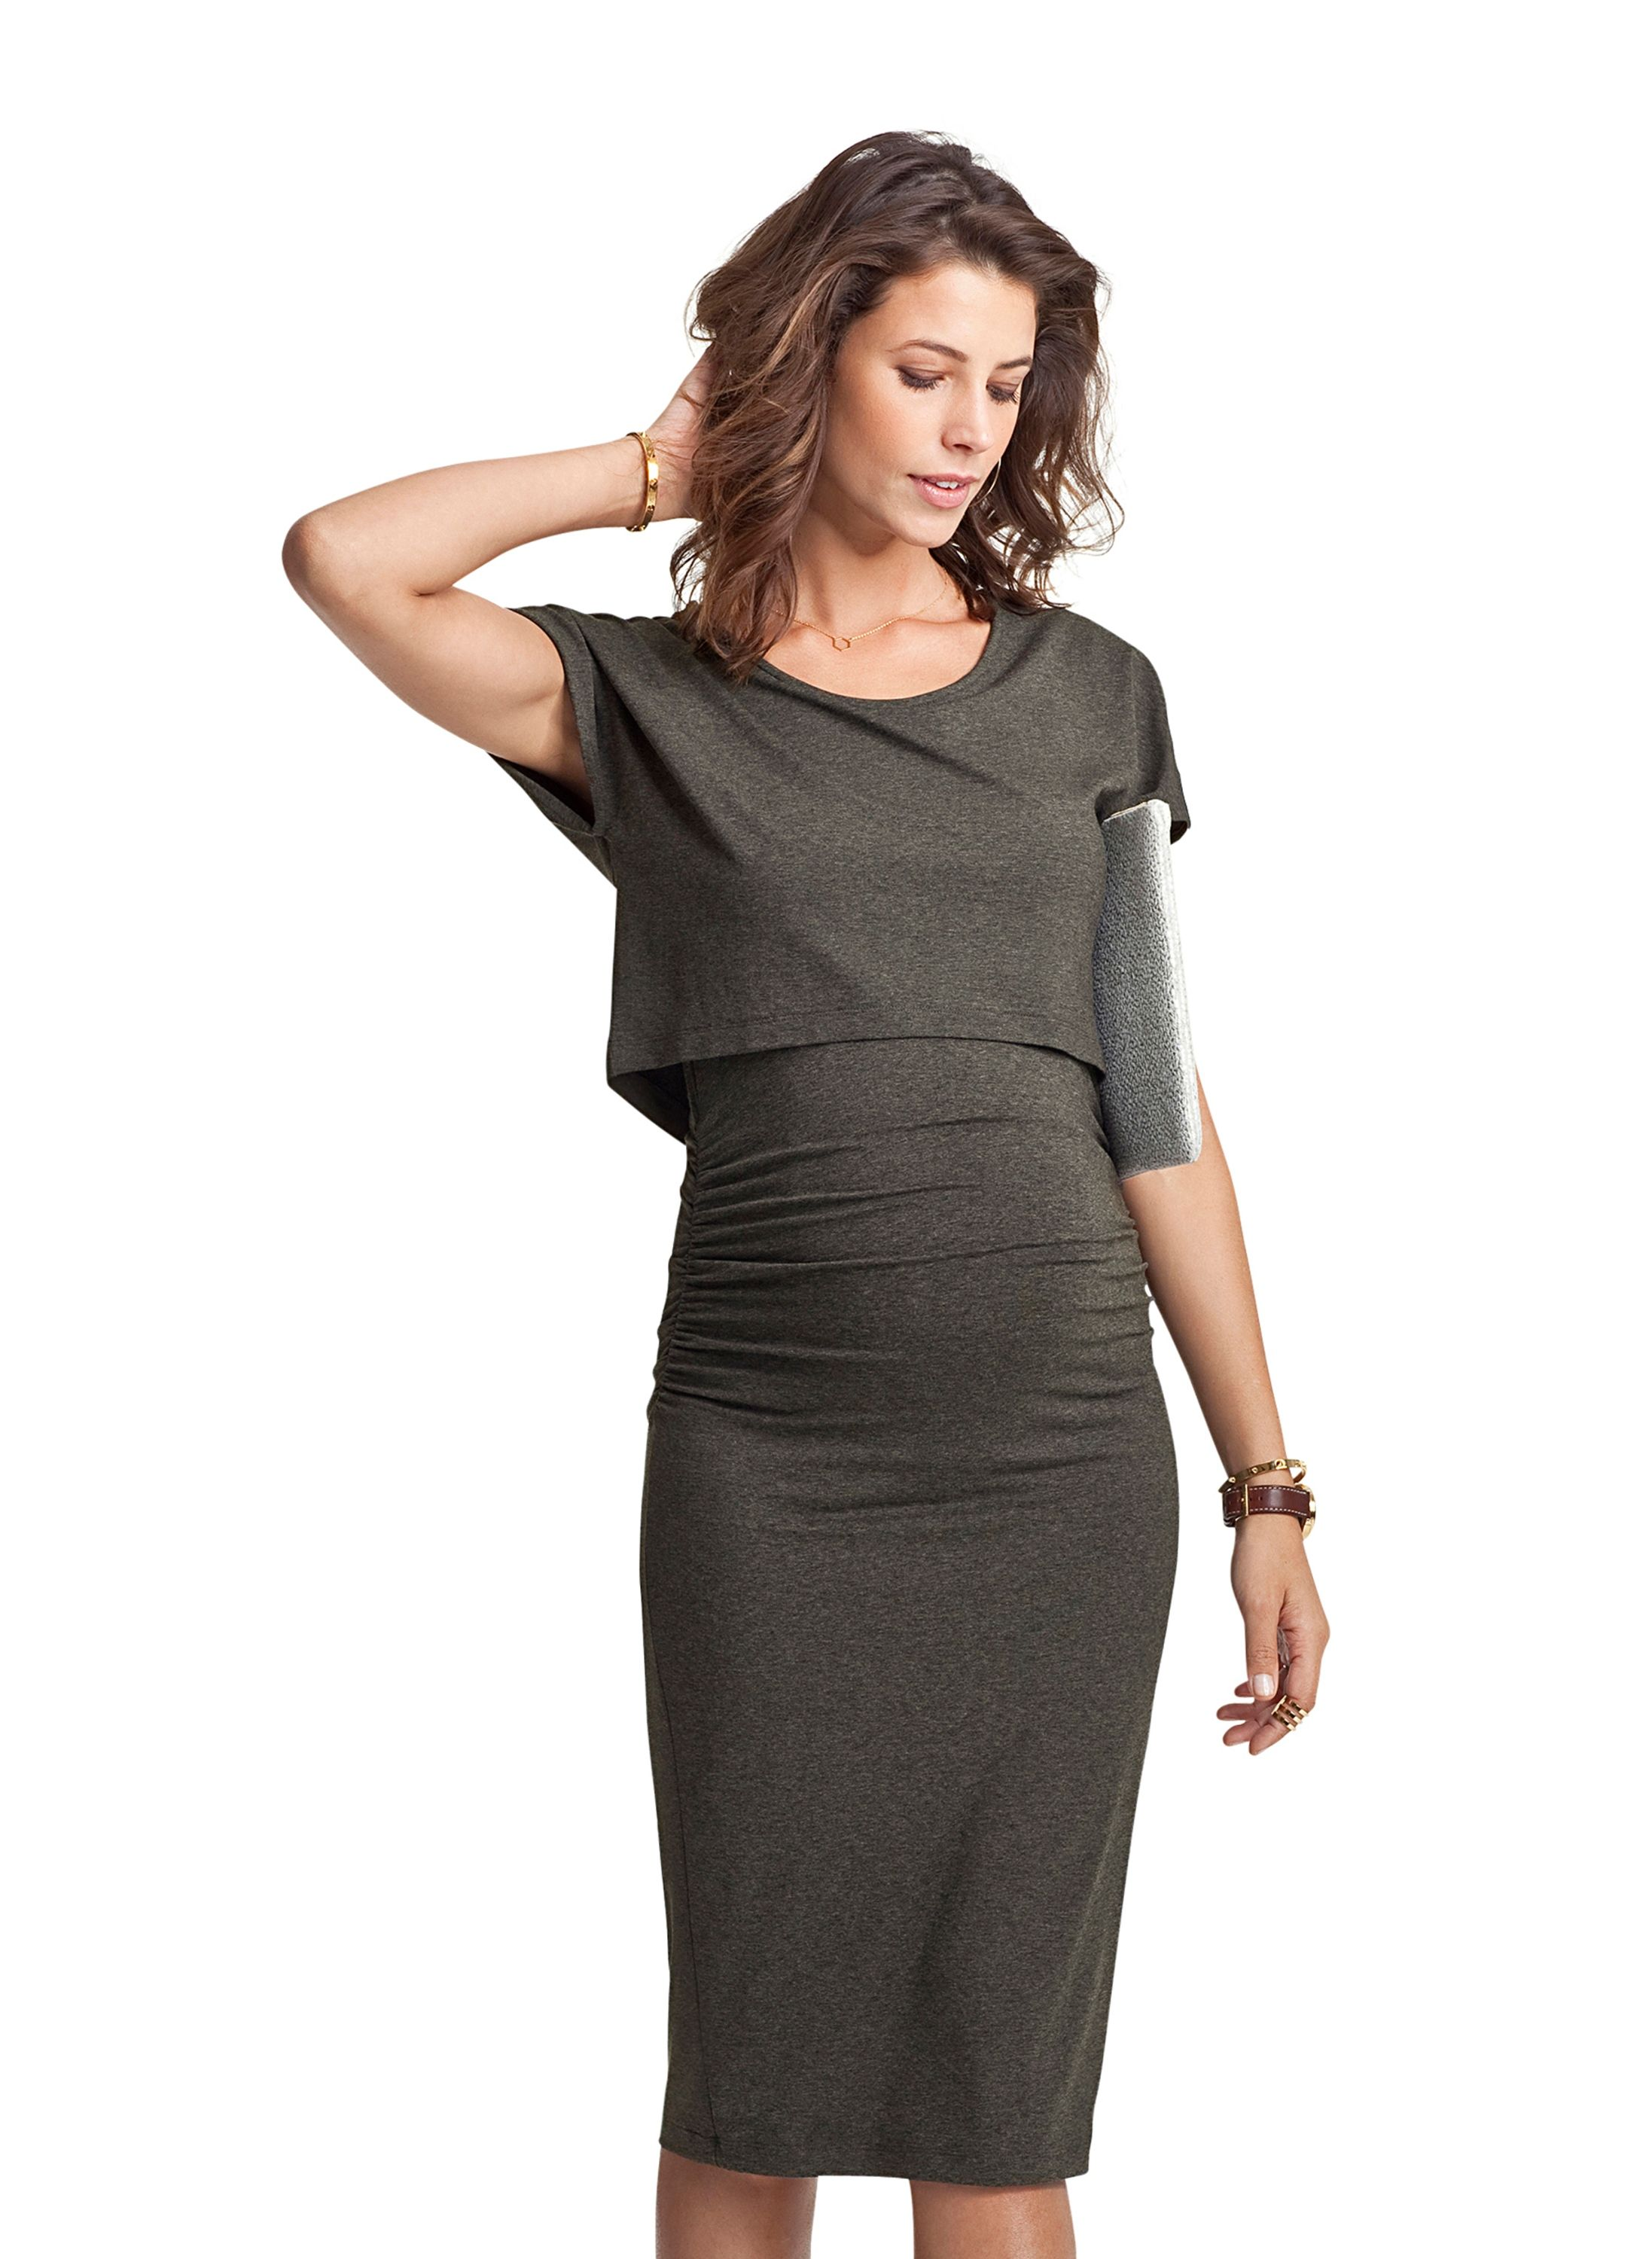 Argyle maternity dress in grey isabella oliver us mommy argyle maternity dress at isabella oliver shop our luxury maternity collection today for stylish premium quality maternity clothes that will last ombrellifo Image collections